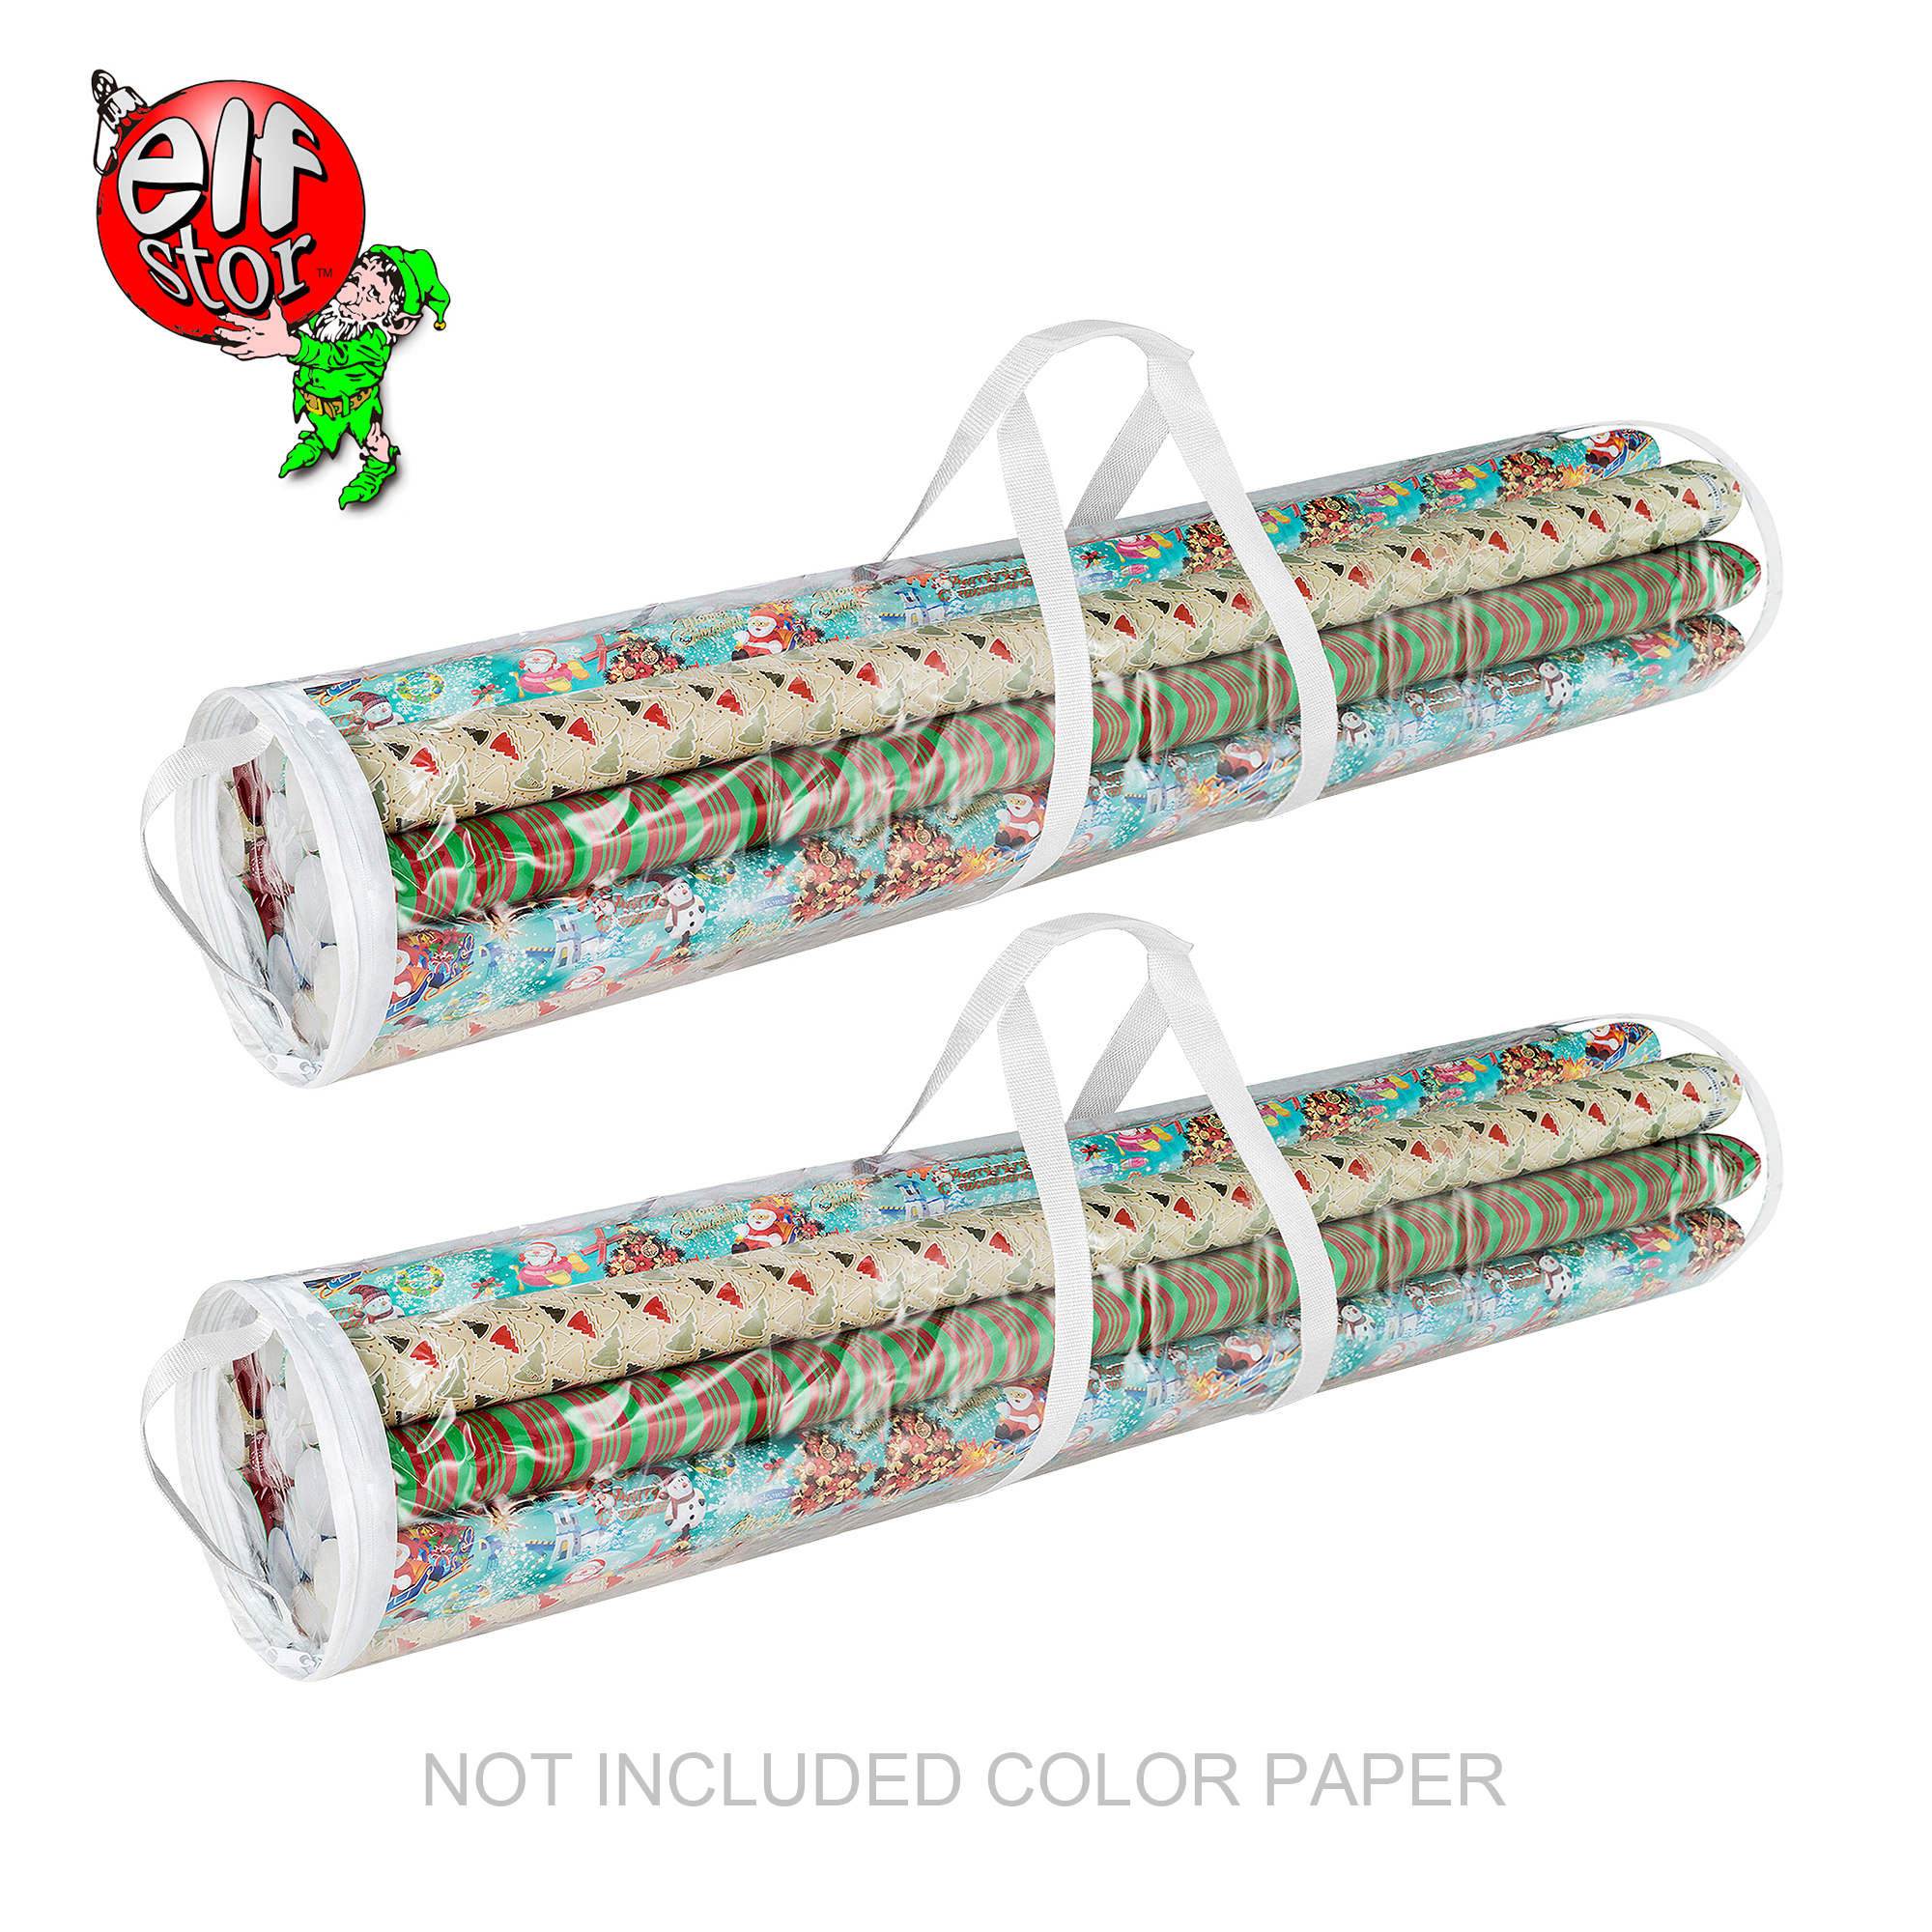 Elf Stor Wrapping Paper and Gift Wrap Storage Bag for 40 Inch Rolls | 2 Pack